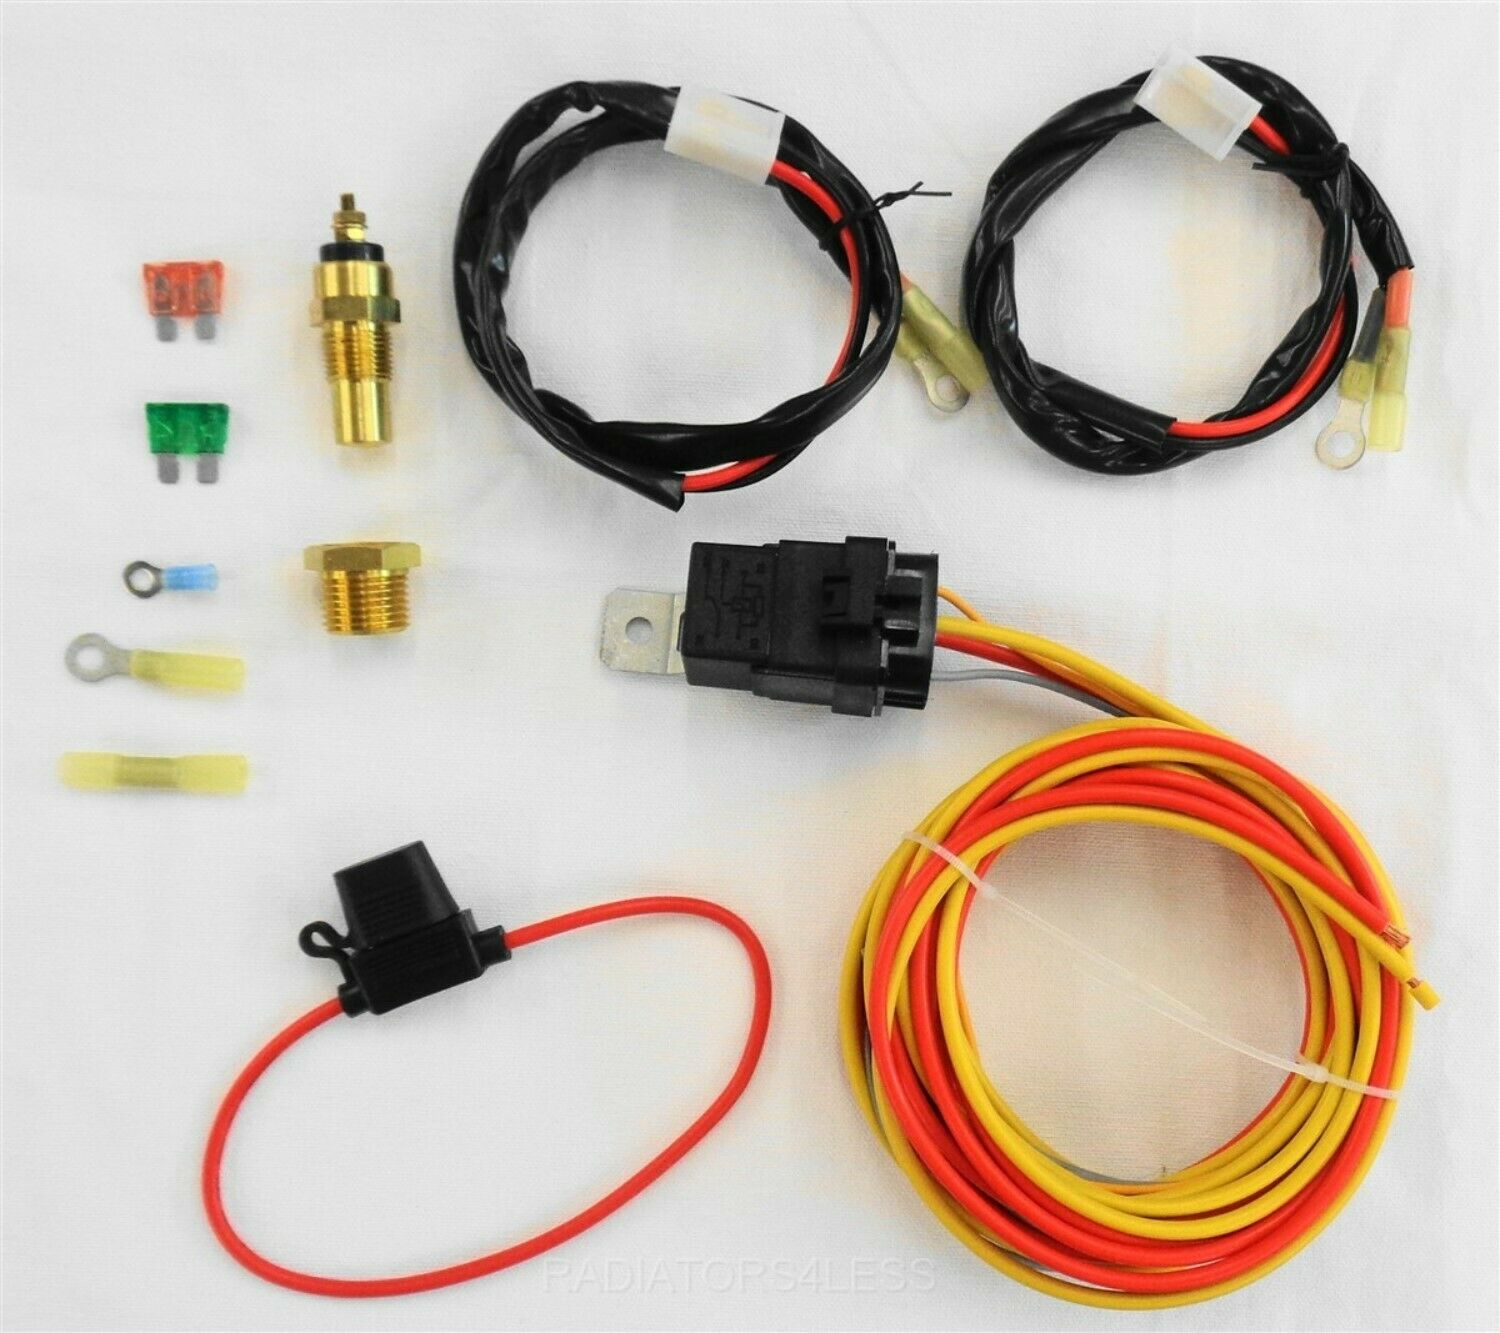 New Dual Electric Cooling Fan Wiring Install Kit 185 165 Thermostat 1 Of 5free Shipping